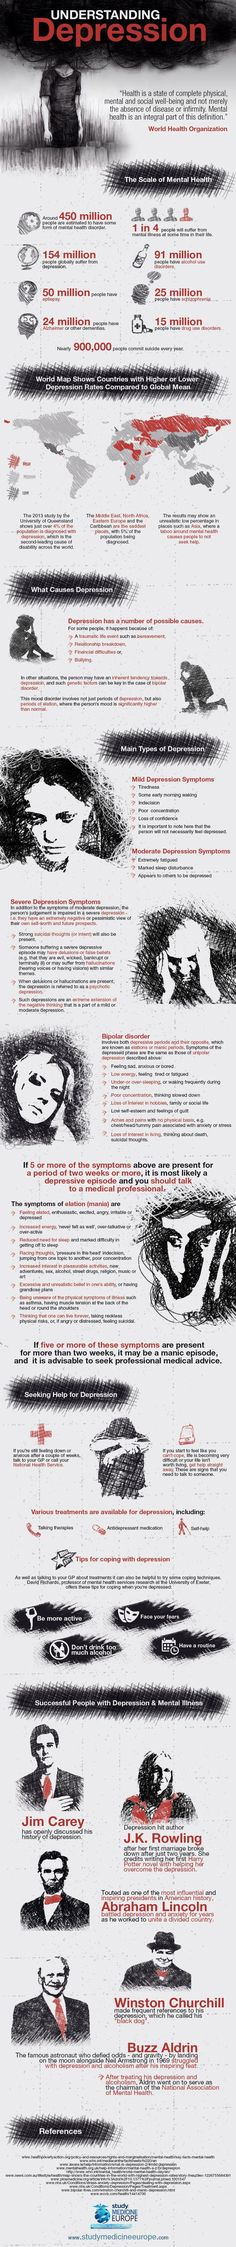 An Infographic to Help You Understand Depression - Whether induced by outside factors or an inherent tendency towards depression or bipolar disorder, seek help if symptoms are present for two or more weeks. (View only) Depression and Bipolar Support Alliance Website: http://www.dbsalliance.org/site/PageServer?pagename=home #depresion